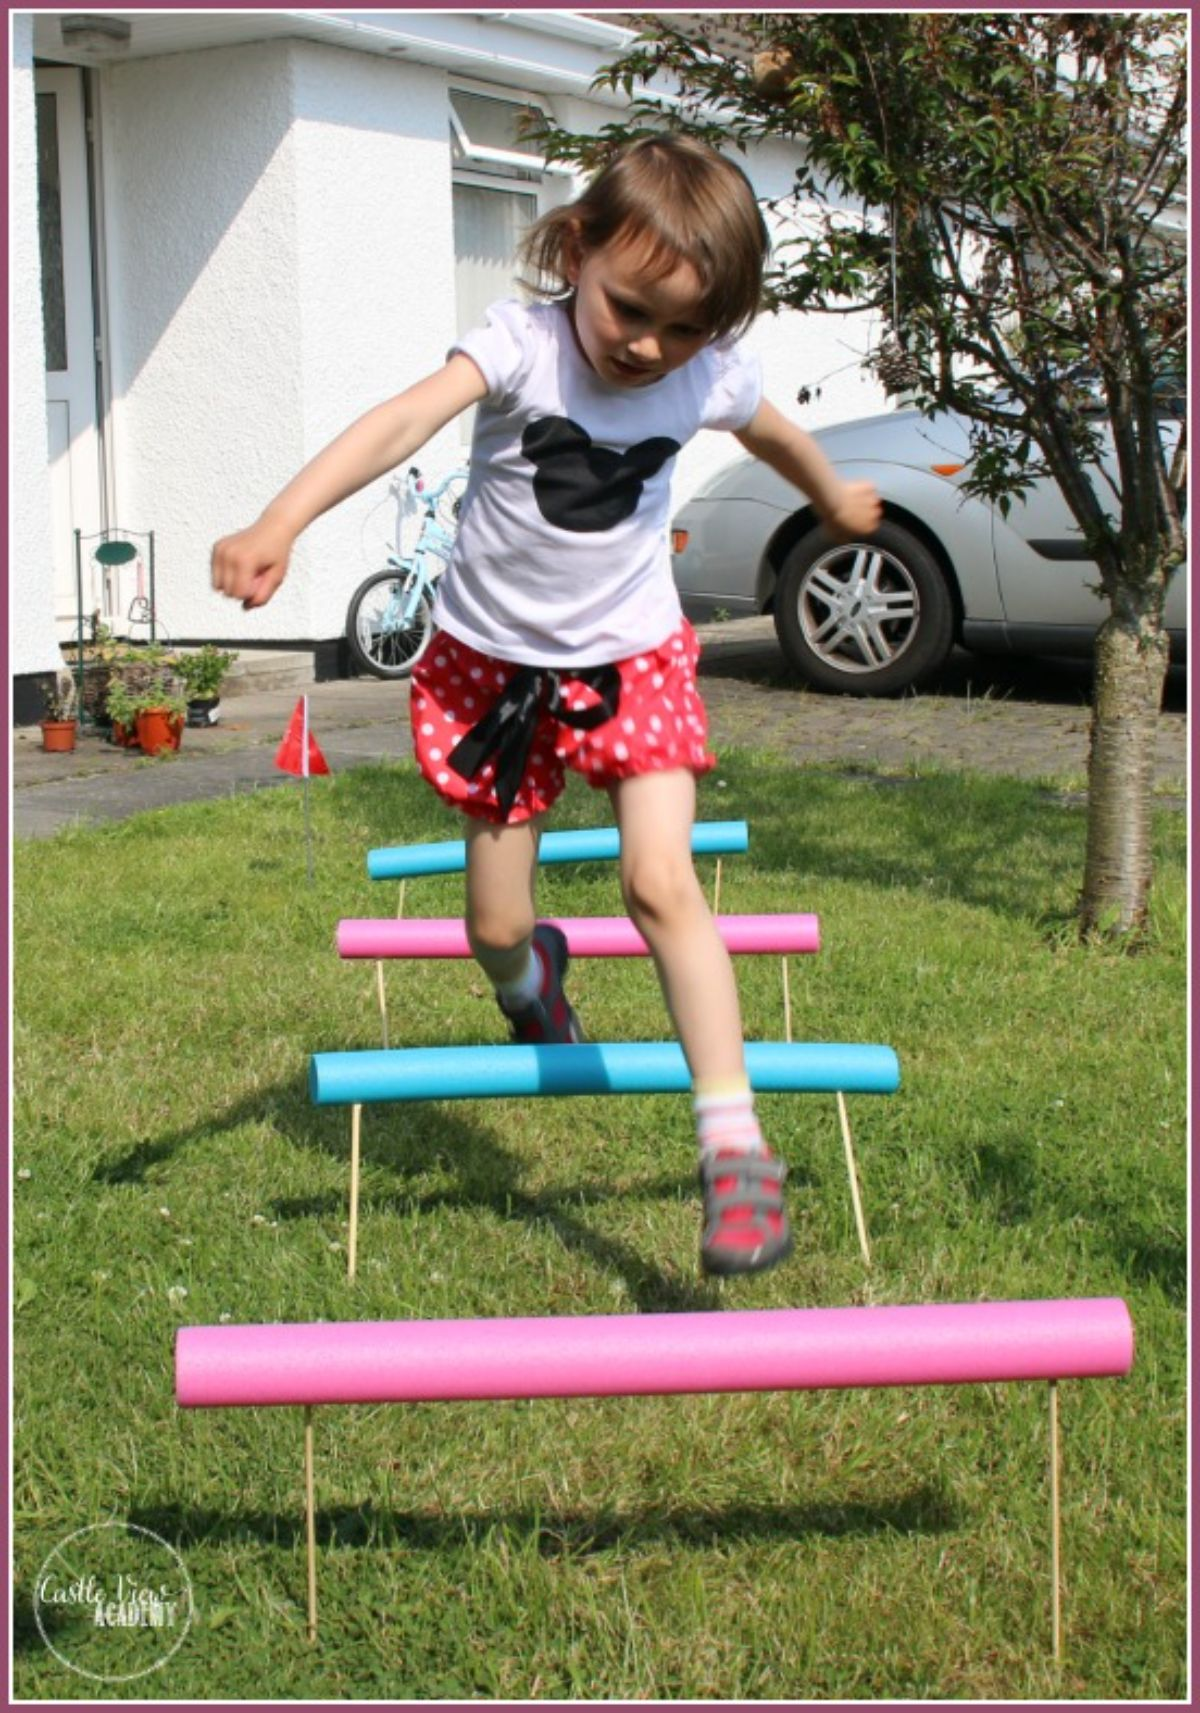 a girl jumps over hurdles made of pink and blue pool noodles